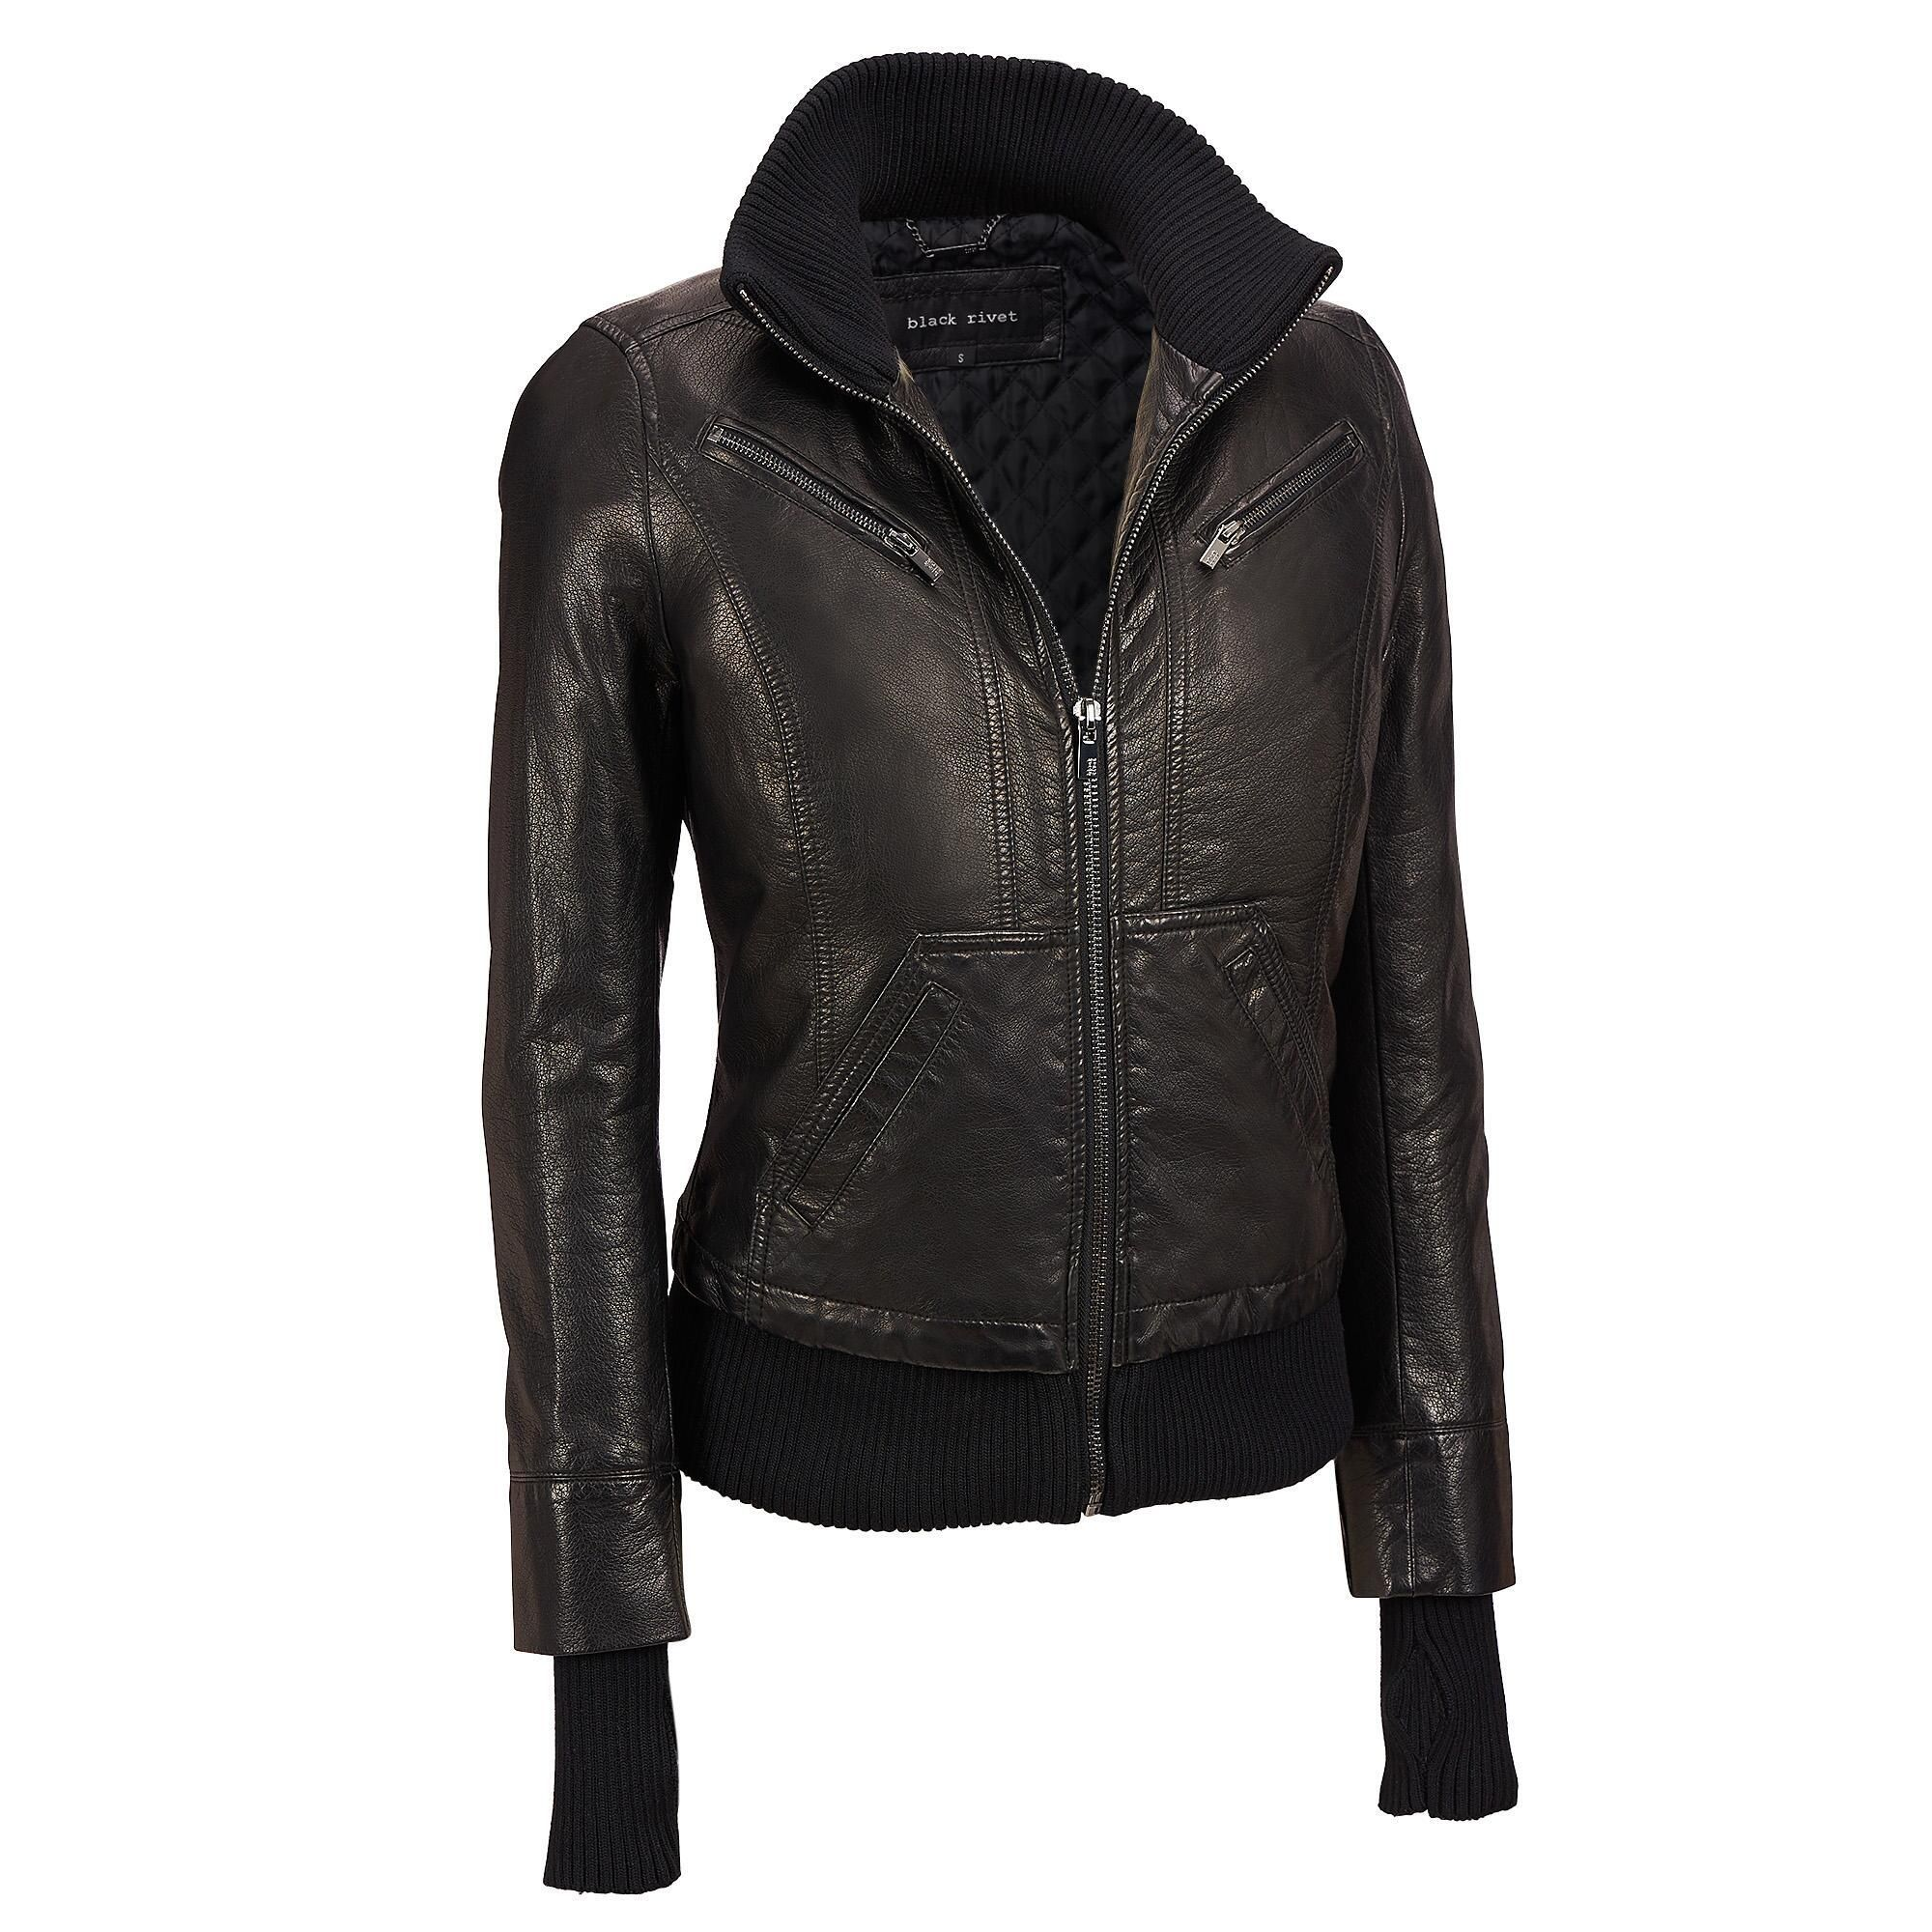 Black Rivet Knit Collar Faux Leather Bomber W Storm Cuffs Bomb Leather Jackets Women Faux Leather Bomber Leather [ 2000 x 2000 Pixel ]